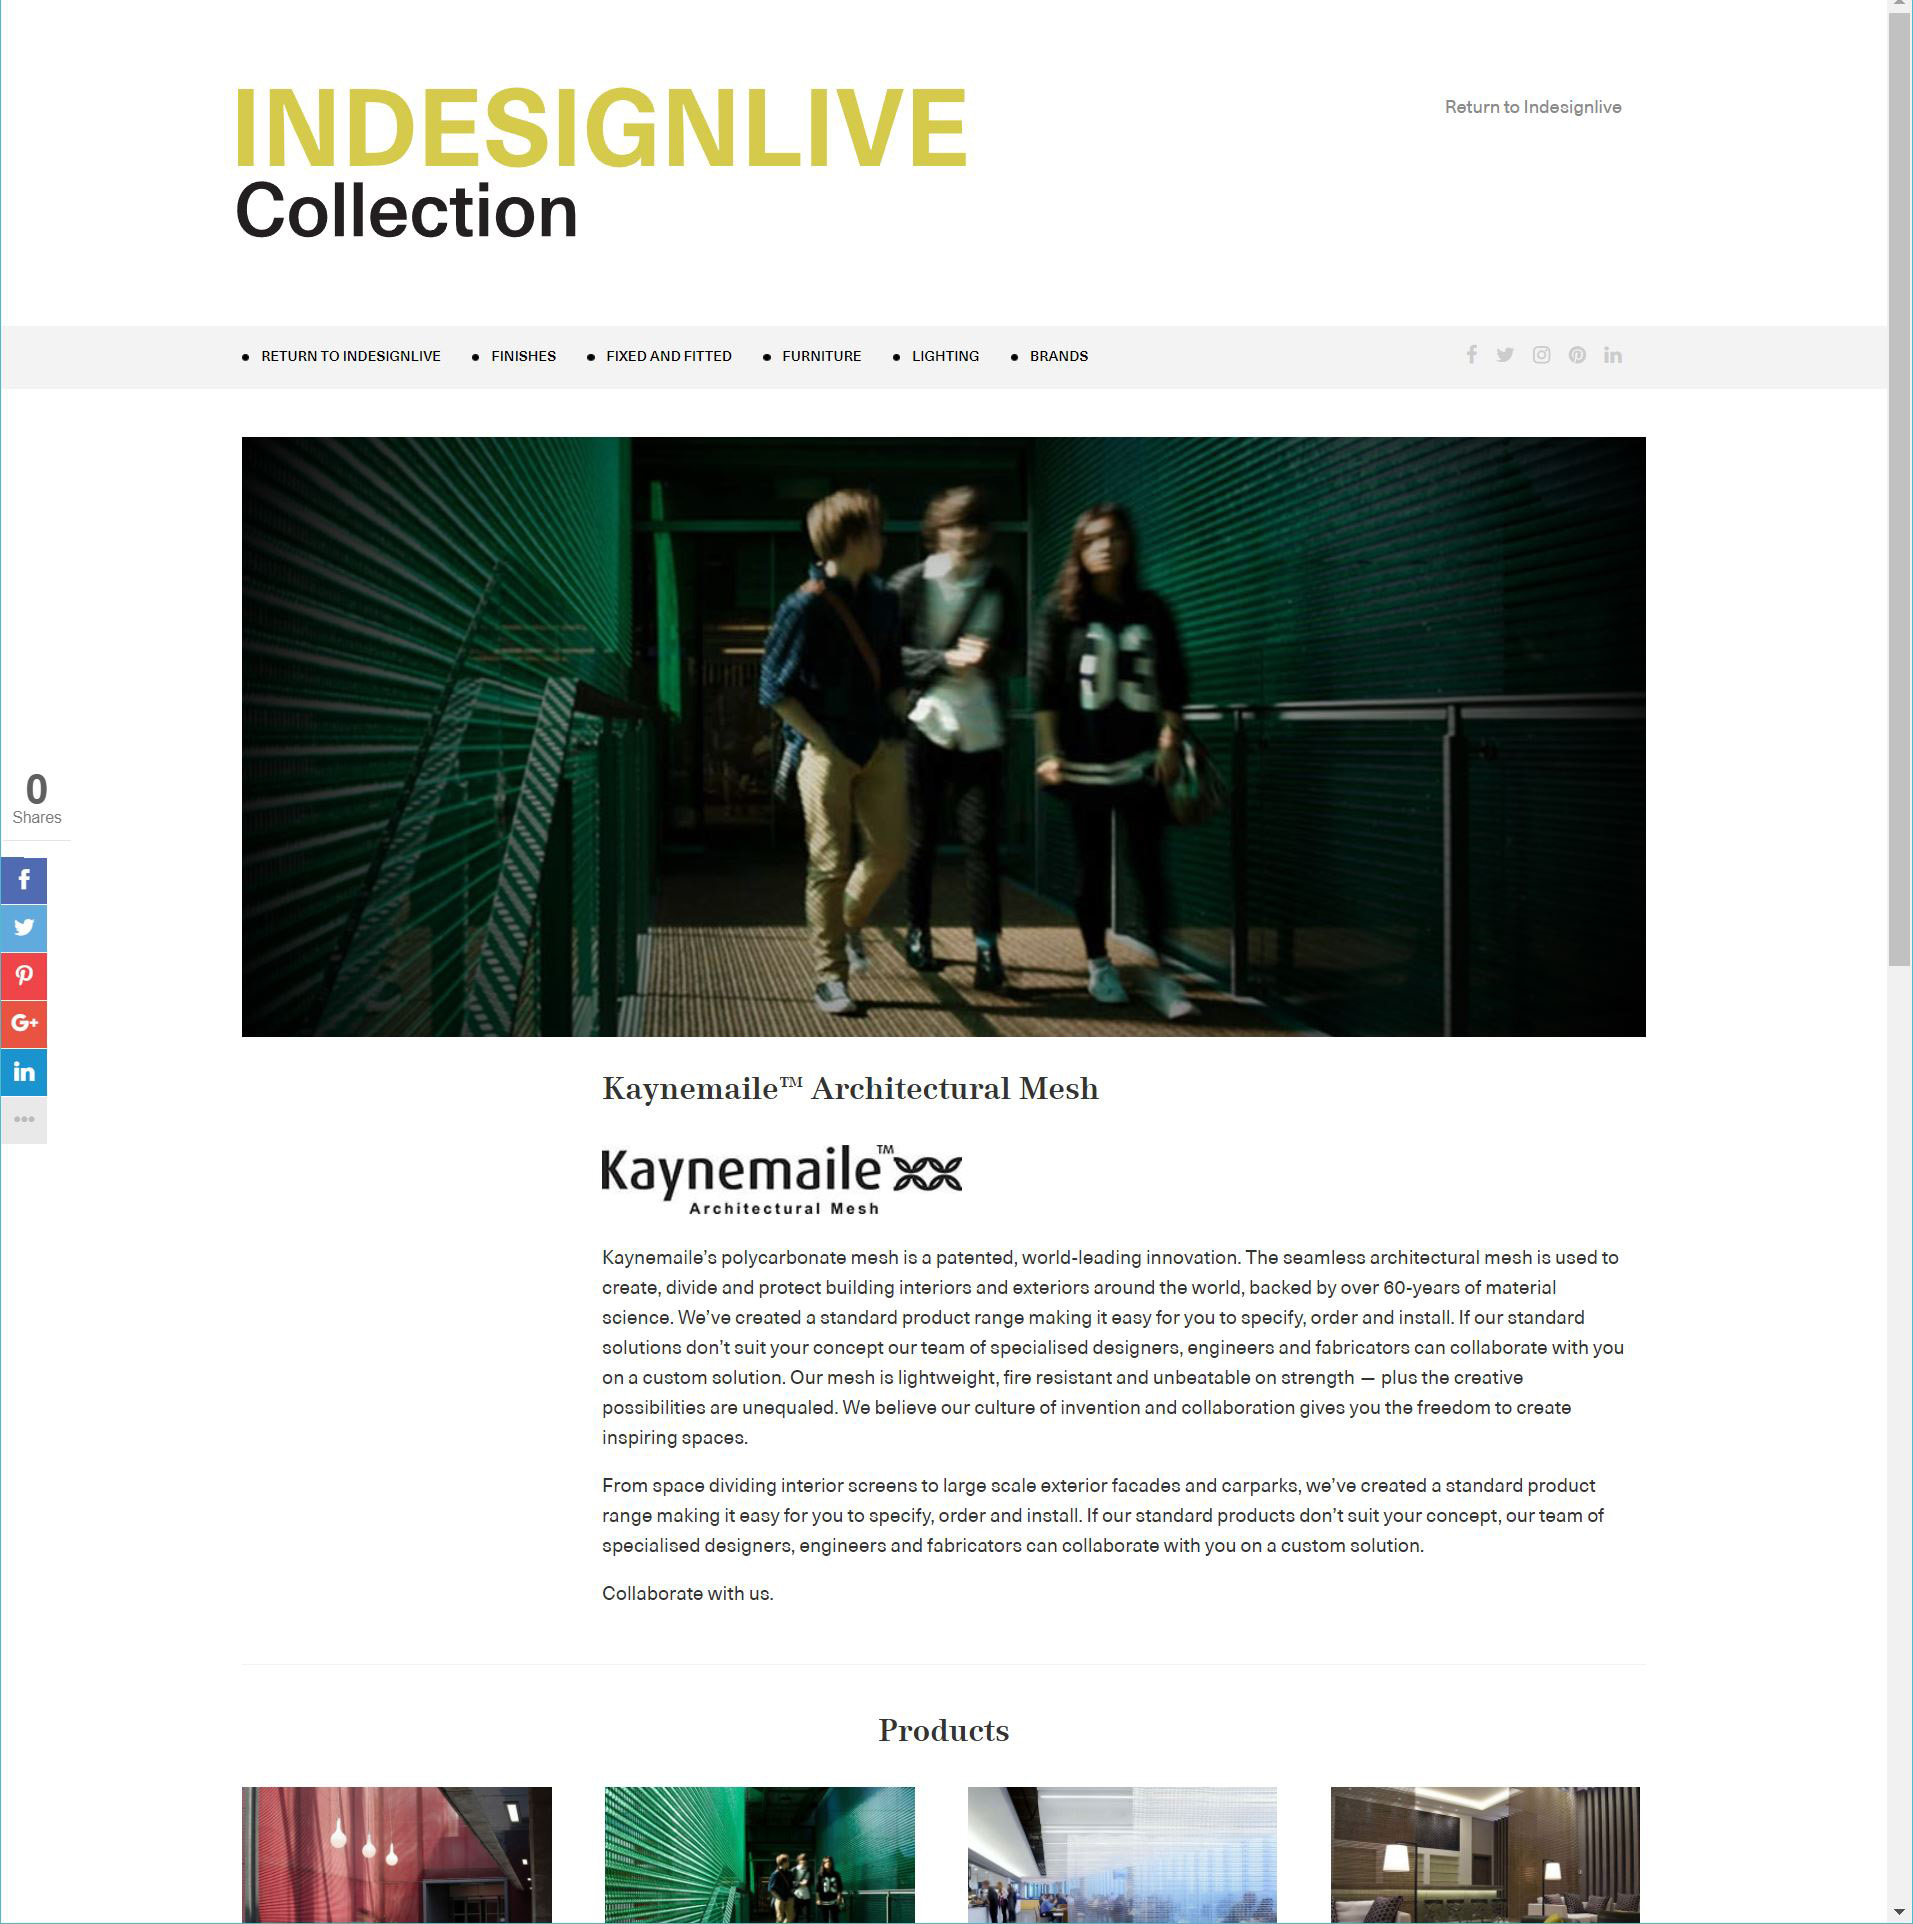 Kaynemaile profile on The Indesign Collection product library